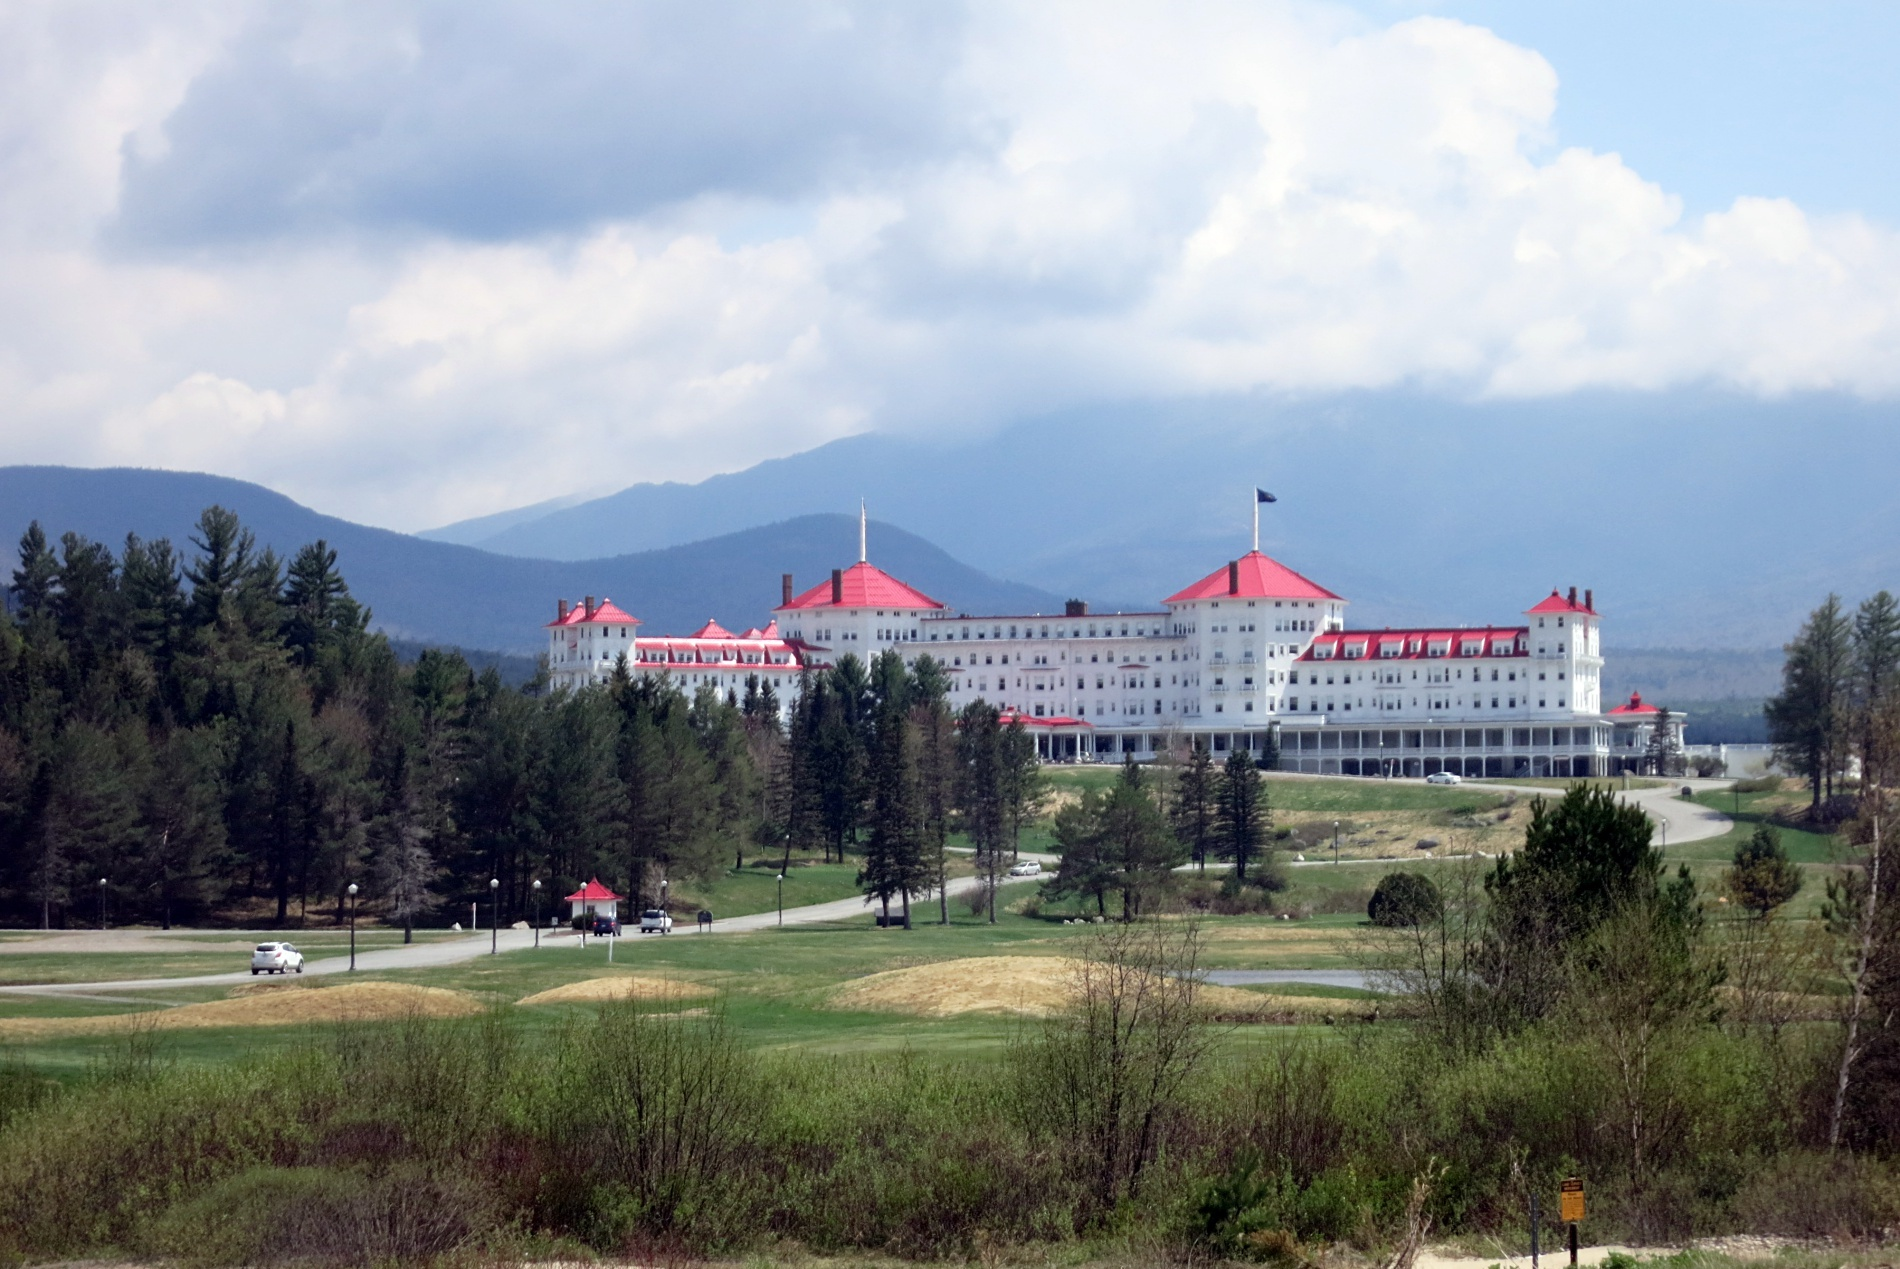 The Mount Washington Hotel At Bretton Woods Nh Historic Tour New England Today